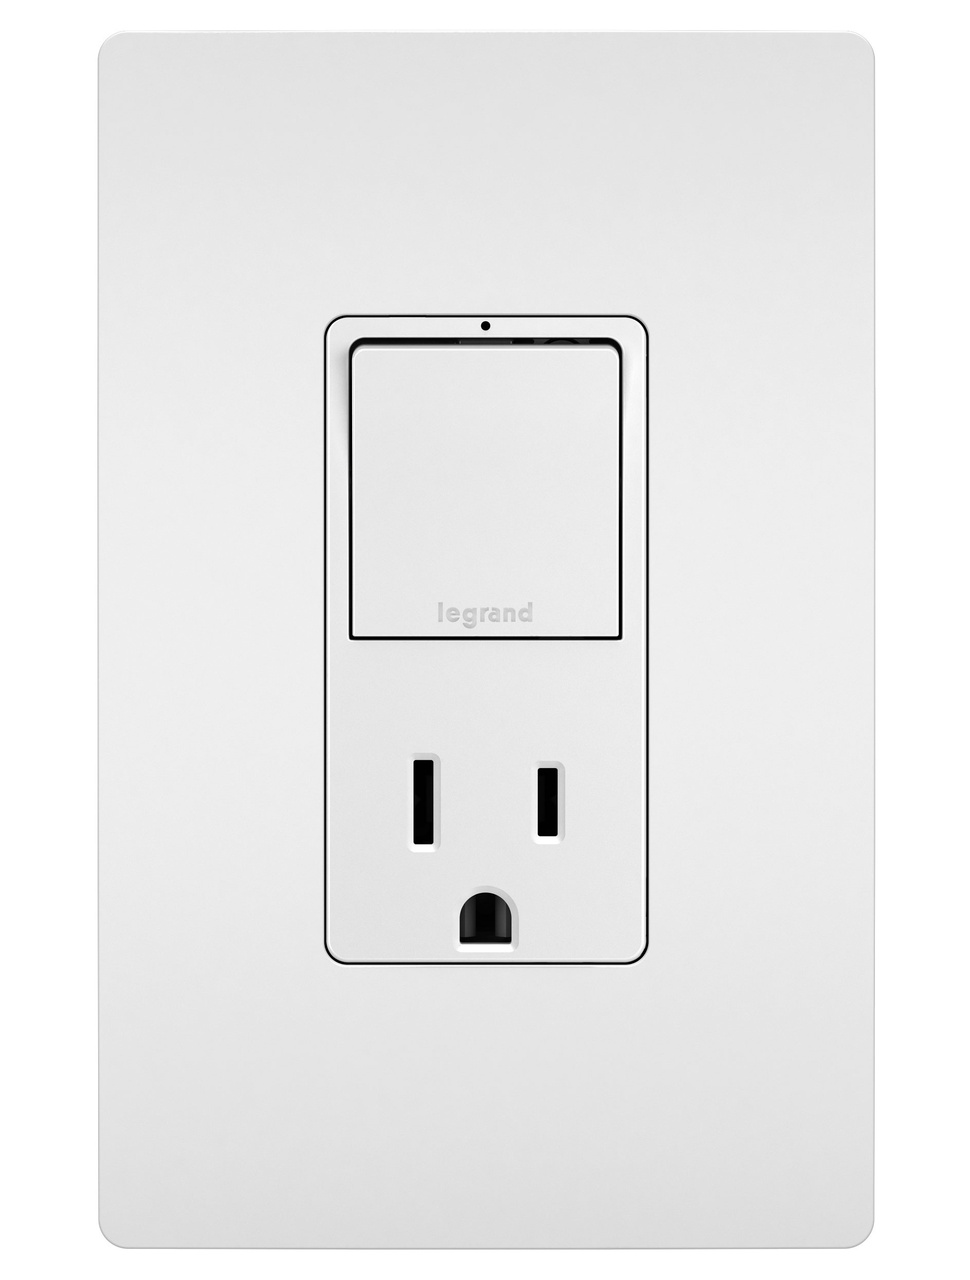 Radiant Rcd38trw Combo Single Pole 3 Way Switch 15a Tr Outlet Wiring Diagram White Legrand